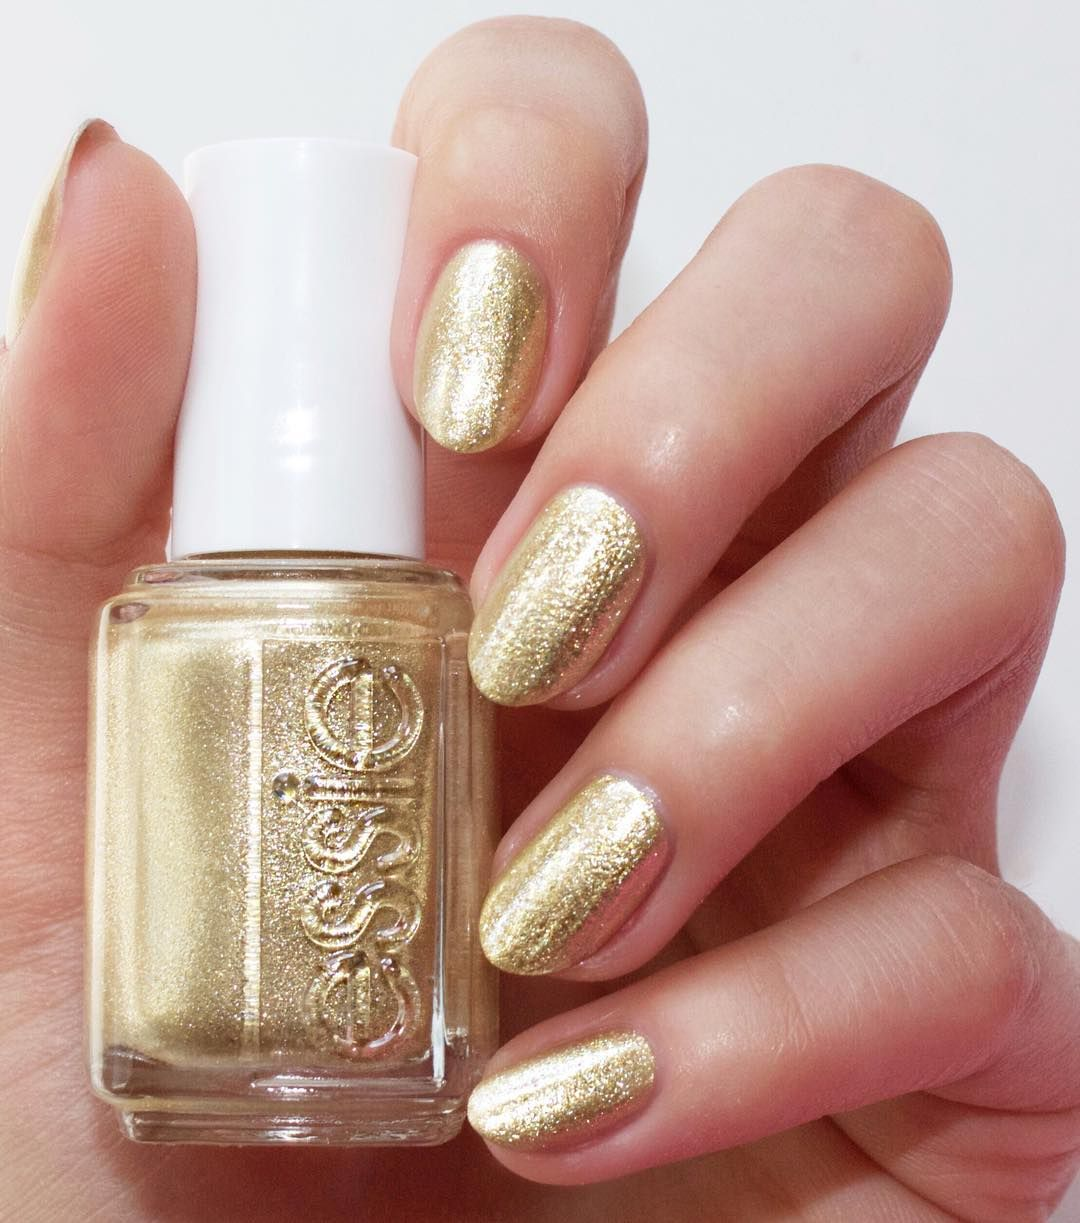 The star of the essie winter collection is definitely sparkling ...